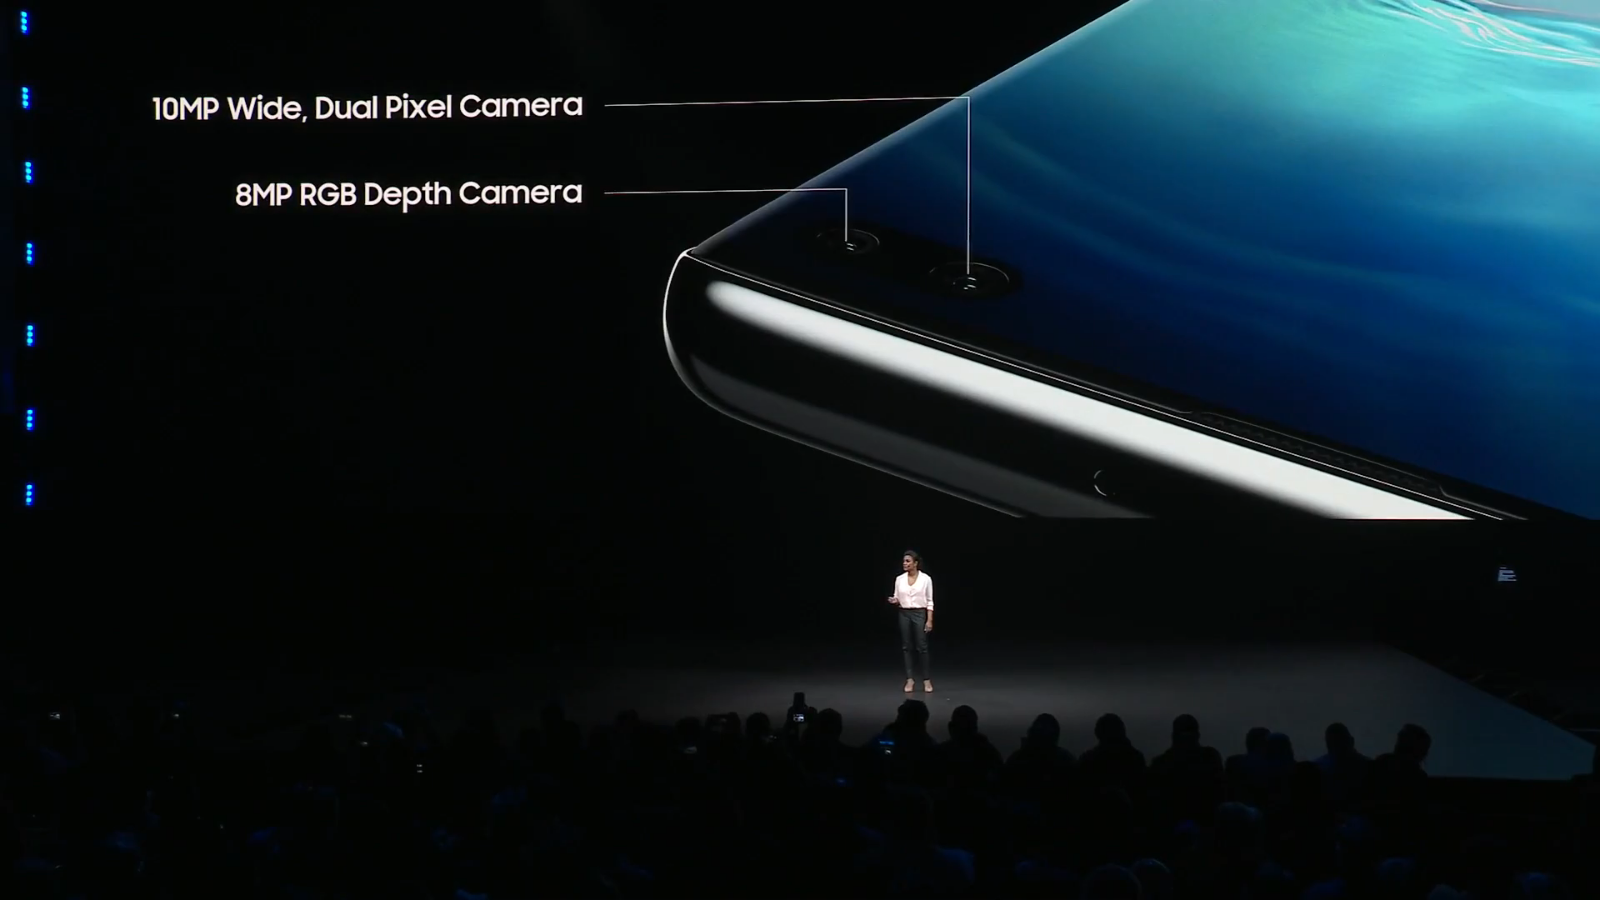 S10 front cameras